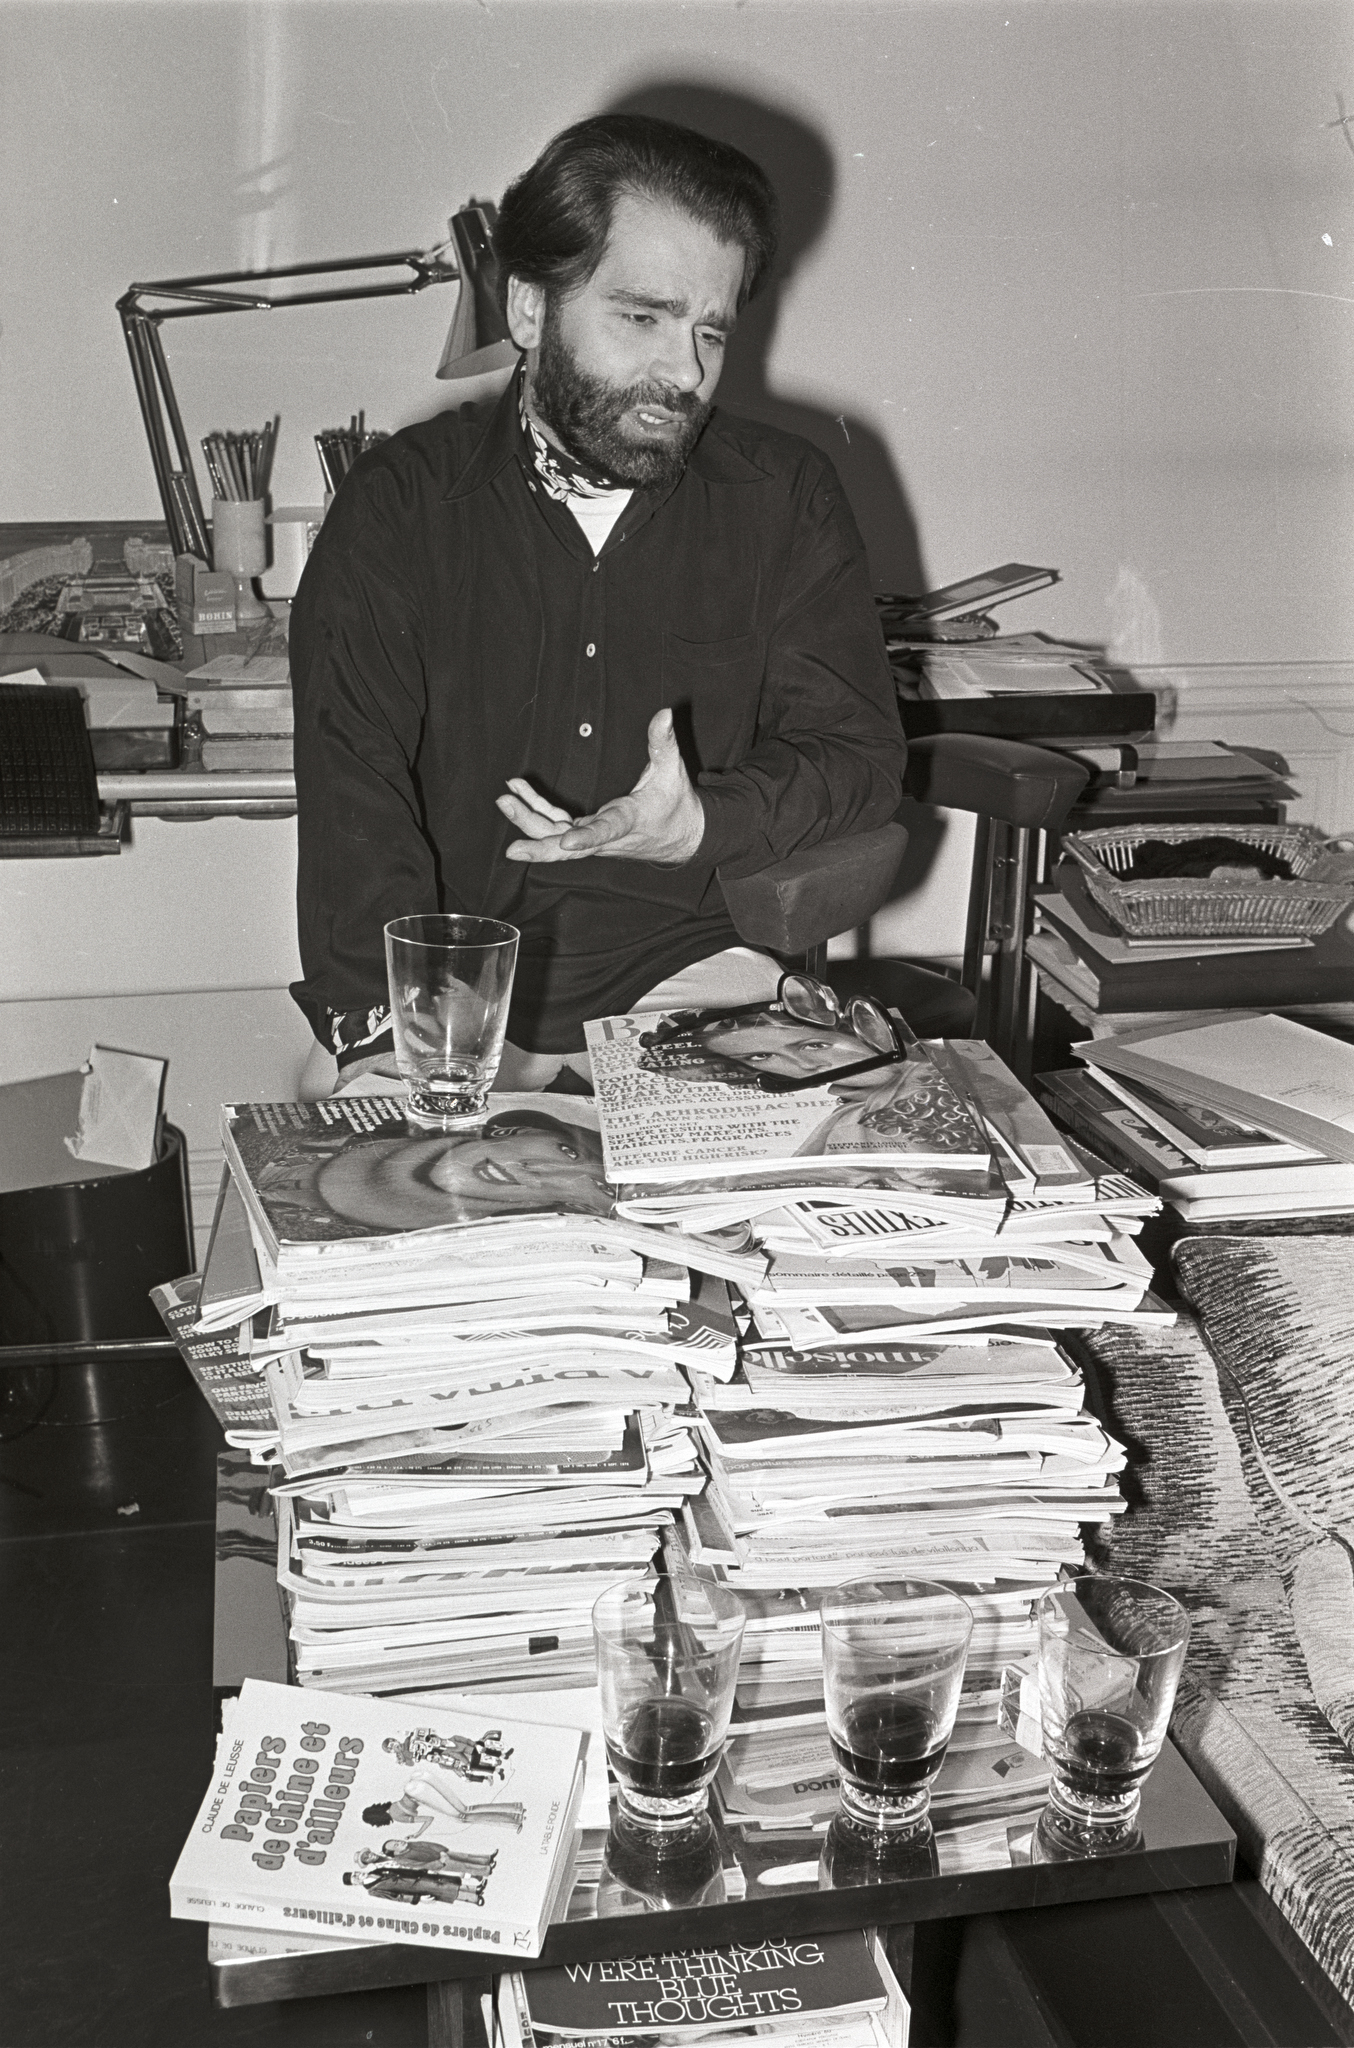 German fashion designer Karl Lagerfeld surrounded by stacks of fashion magazines at home